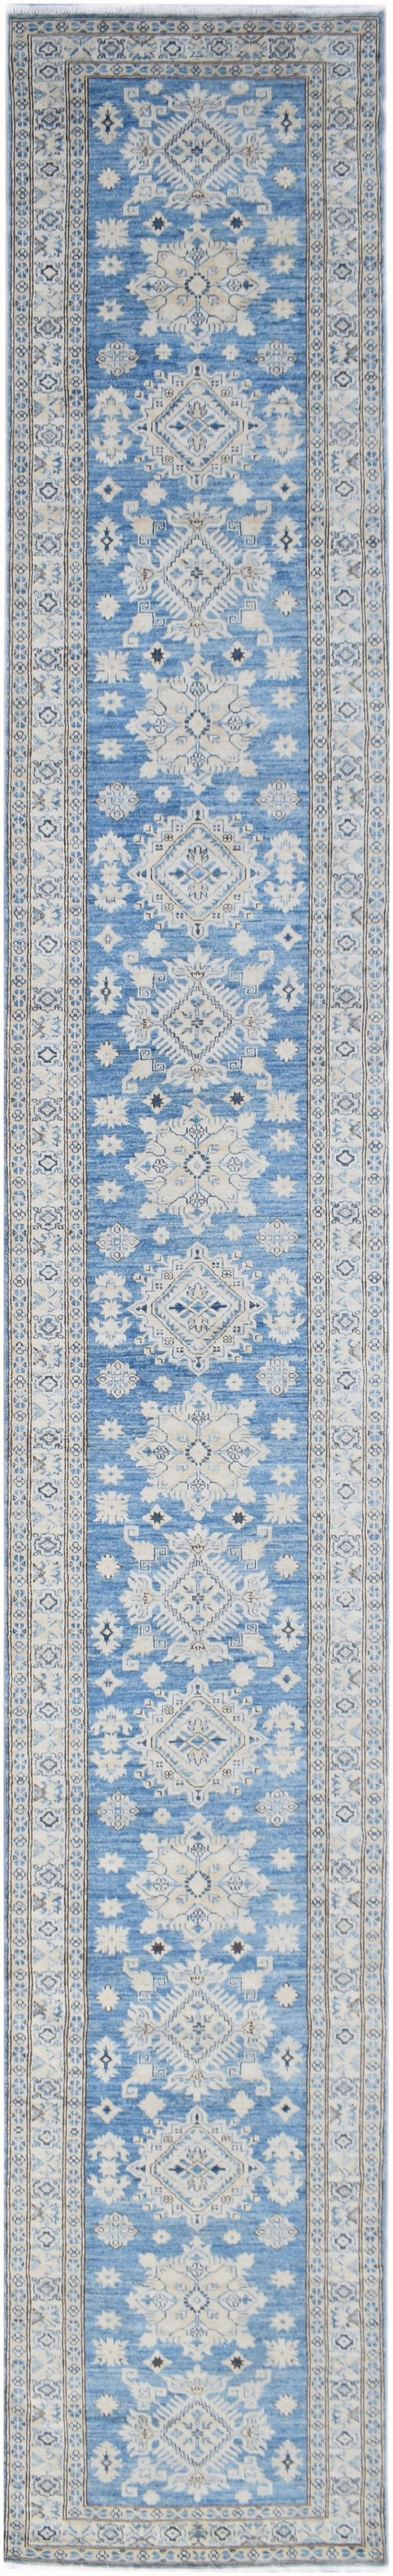 Handmade Super Sultan Collection Hallway Runner | 616 x 90 cm | 20'3